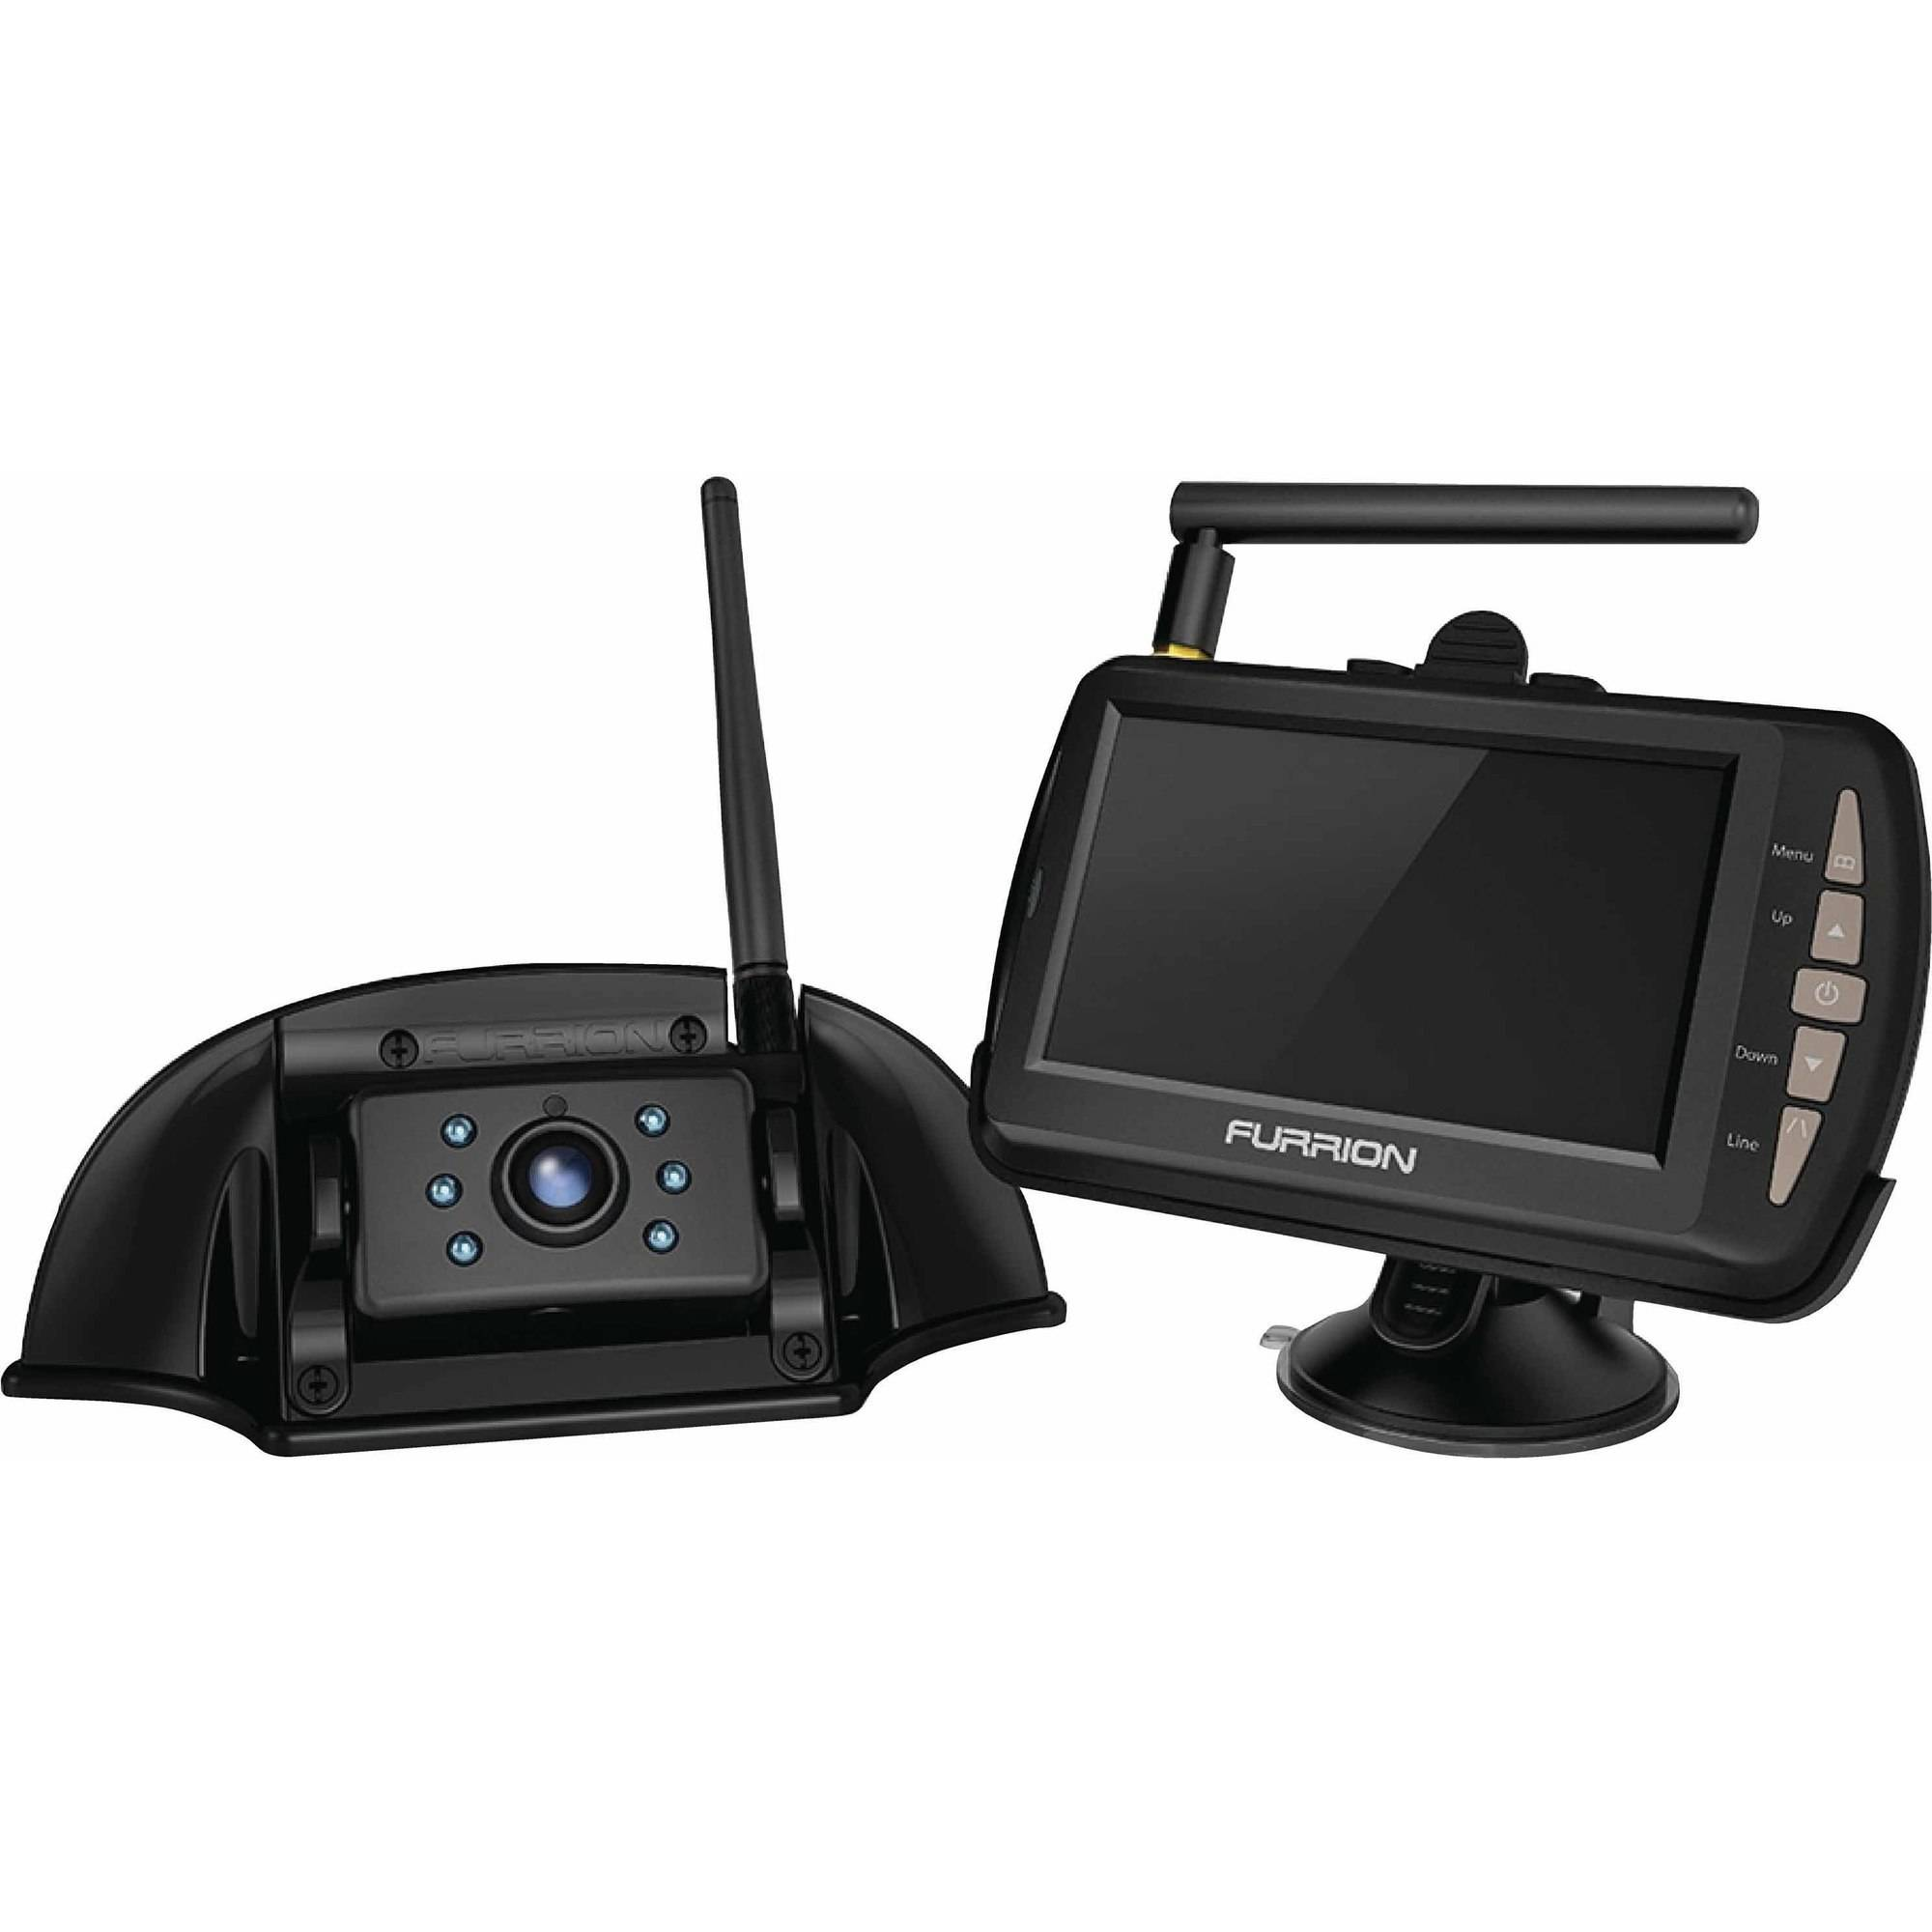 Furrion Digital High-Speed Wireless Observation System With Camera, Monitor and Mounting Bracket